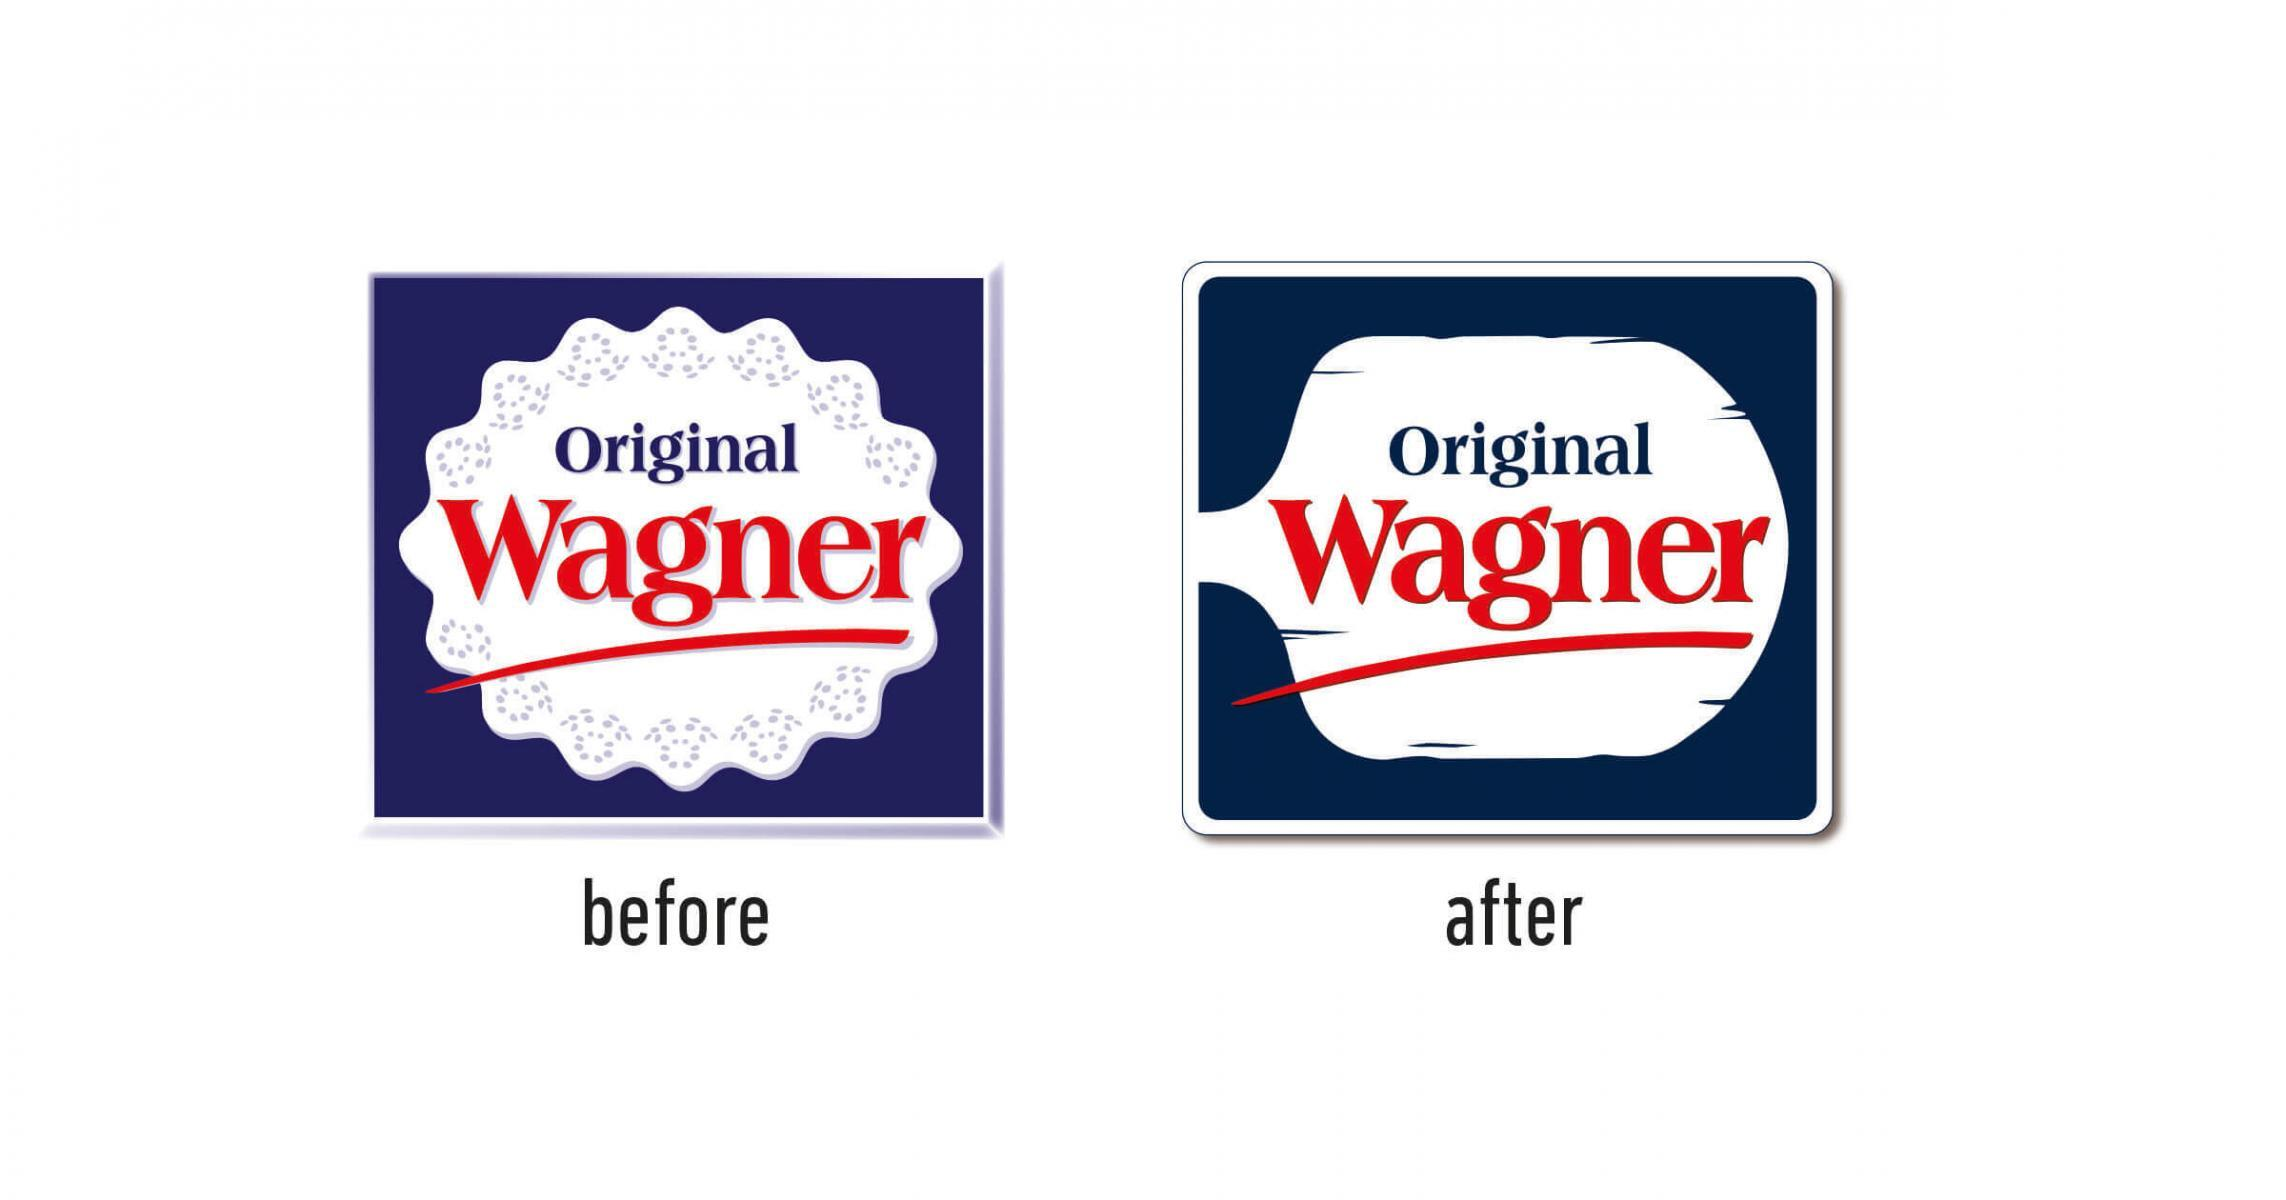 Pizza Wagner Redesign neu Design und Packaging Agentur Steinofen Tiefkühlpizza Salami Logo alt neu old new before after